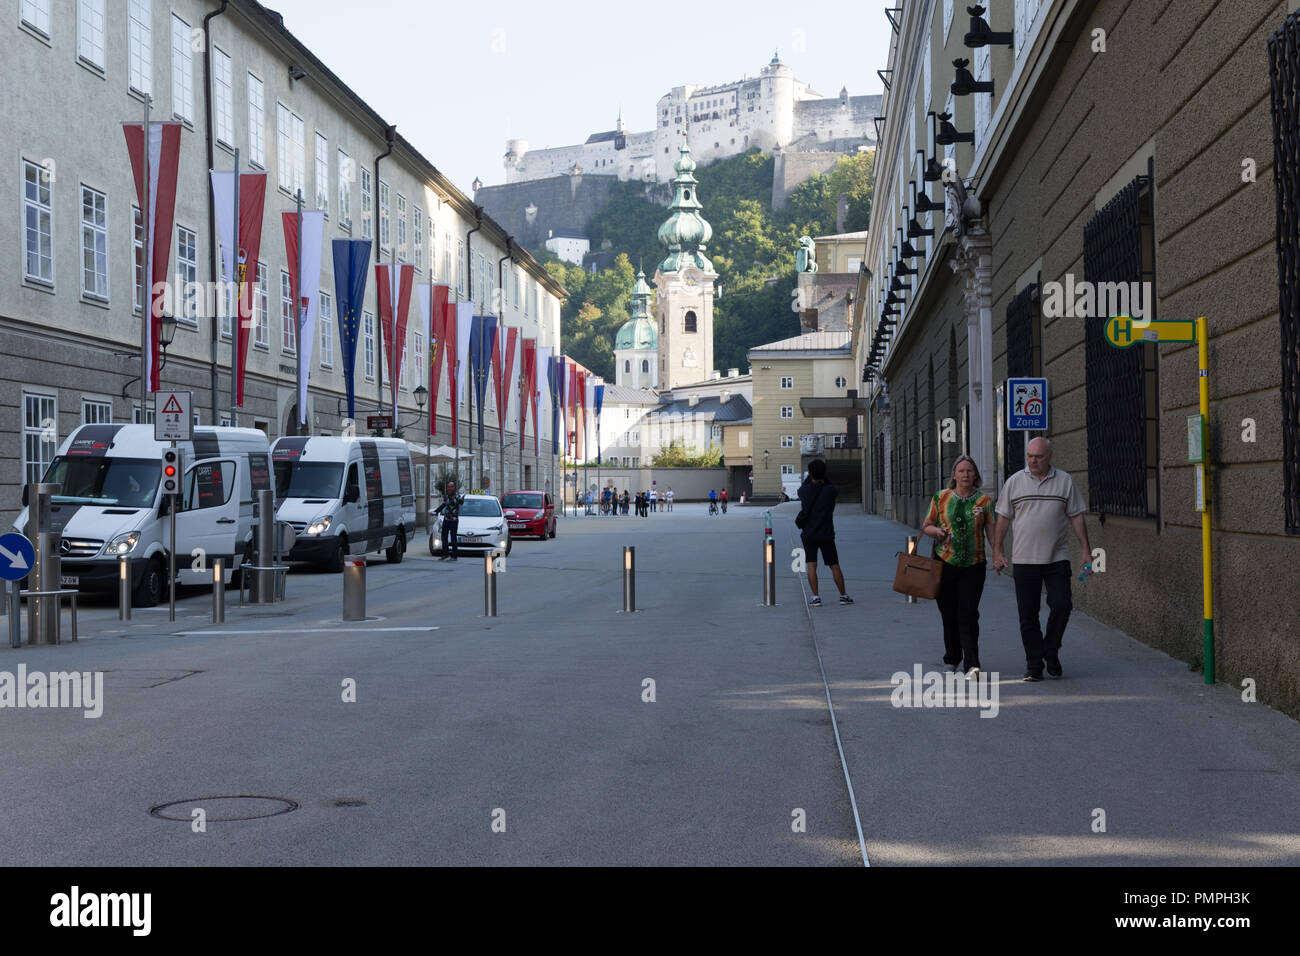 Citycenter of Salzburg, Tyrol; Austria, with flags for the EU summit 2018. - Stock Image